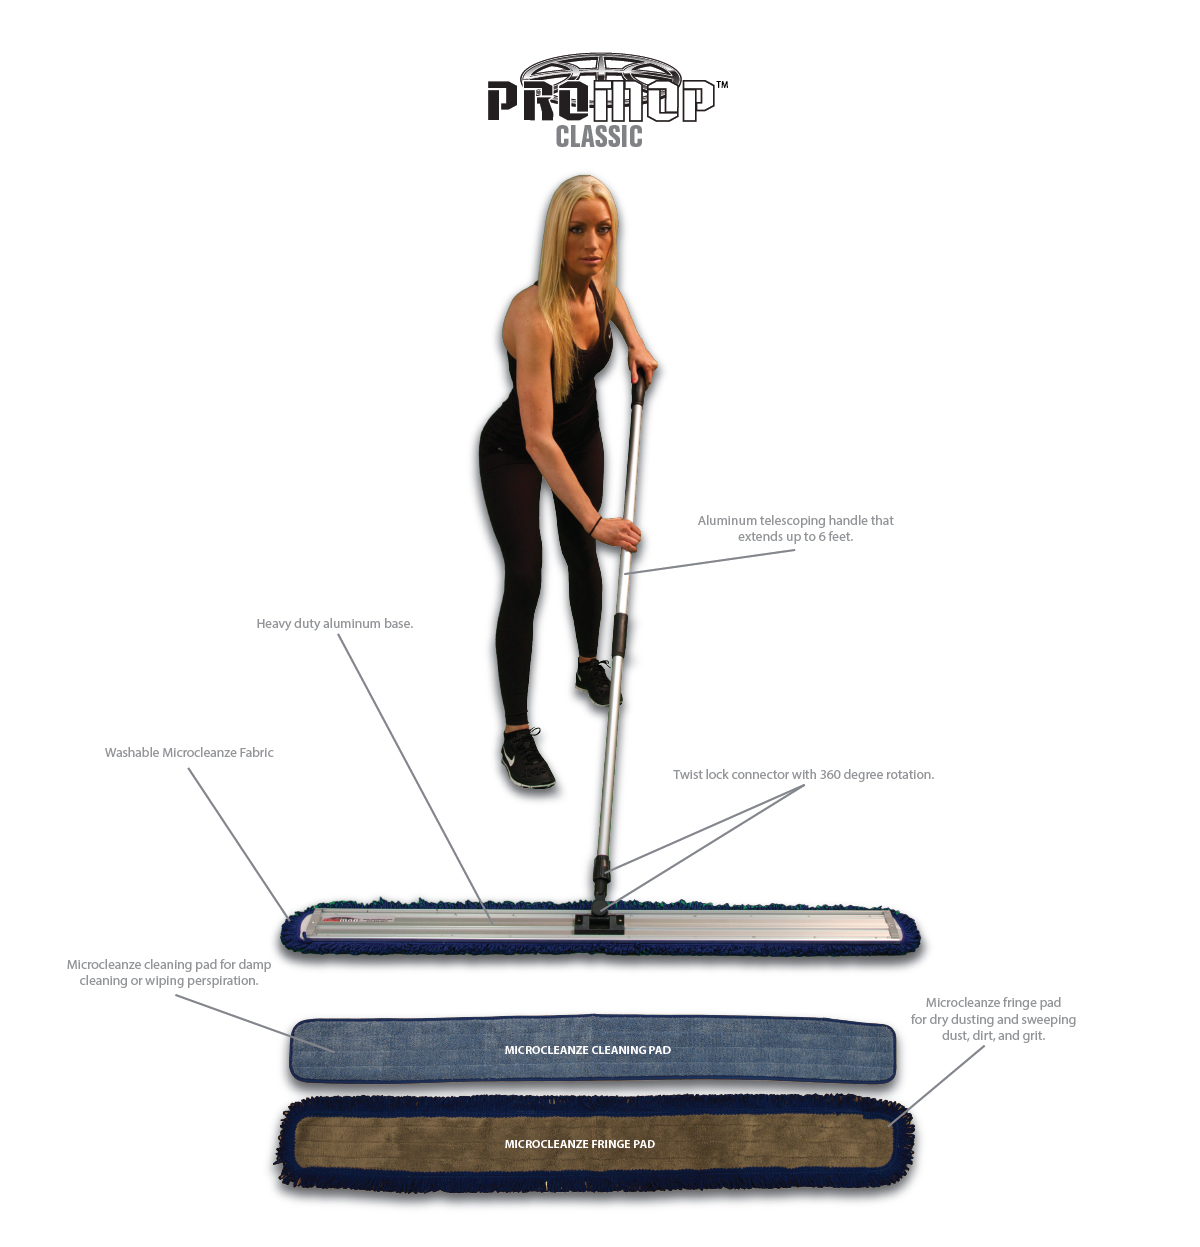 PROMOP CLASSIC BASKETBALL GYM FLOOR CLEANING MOP